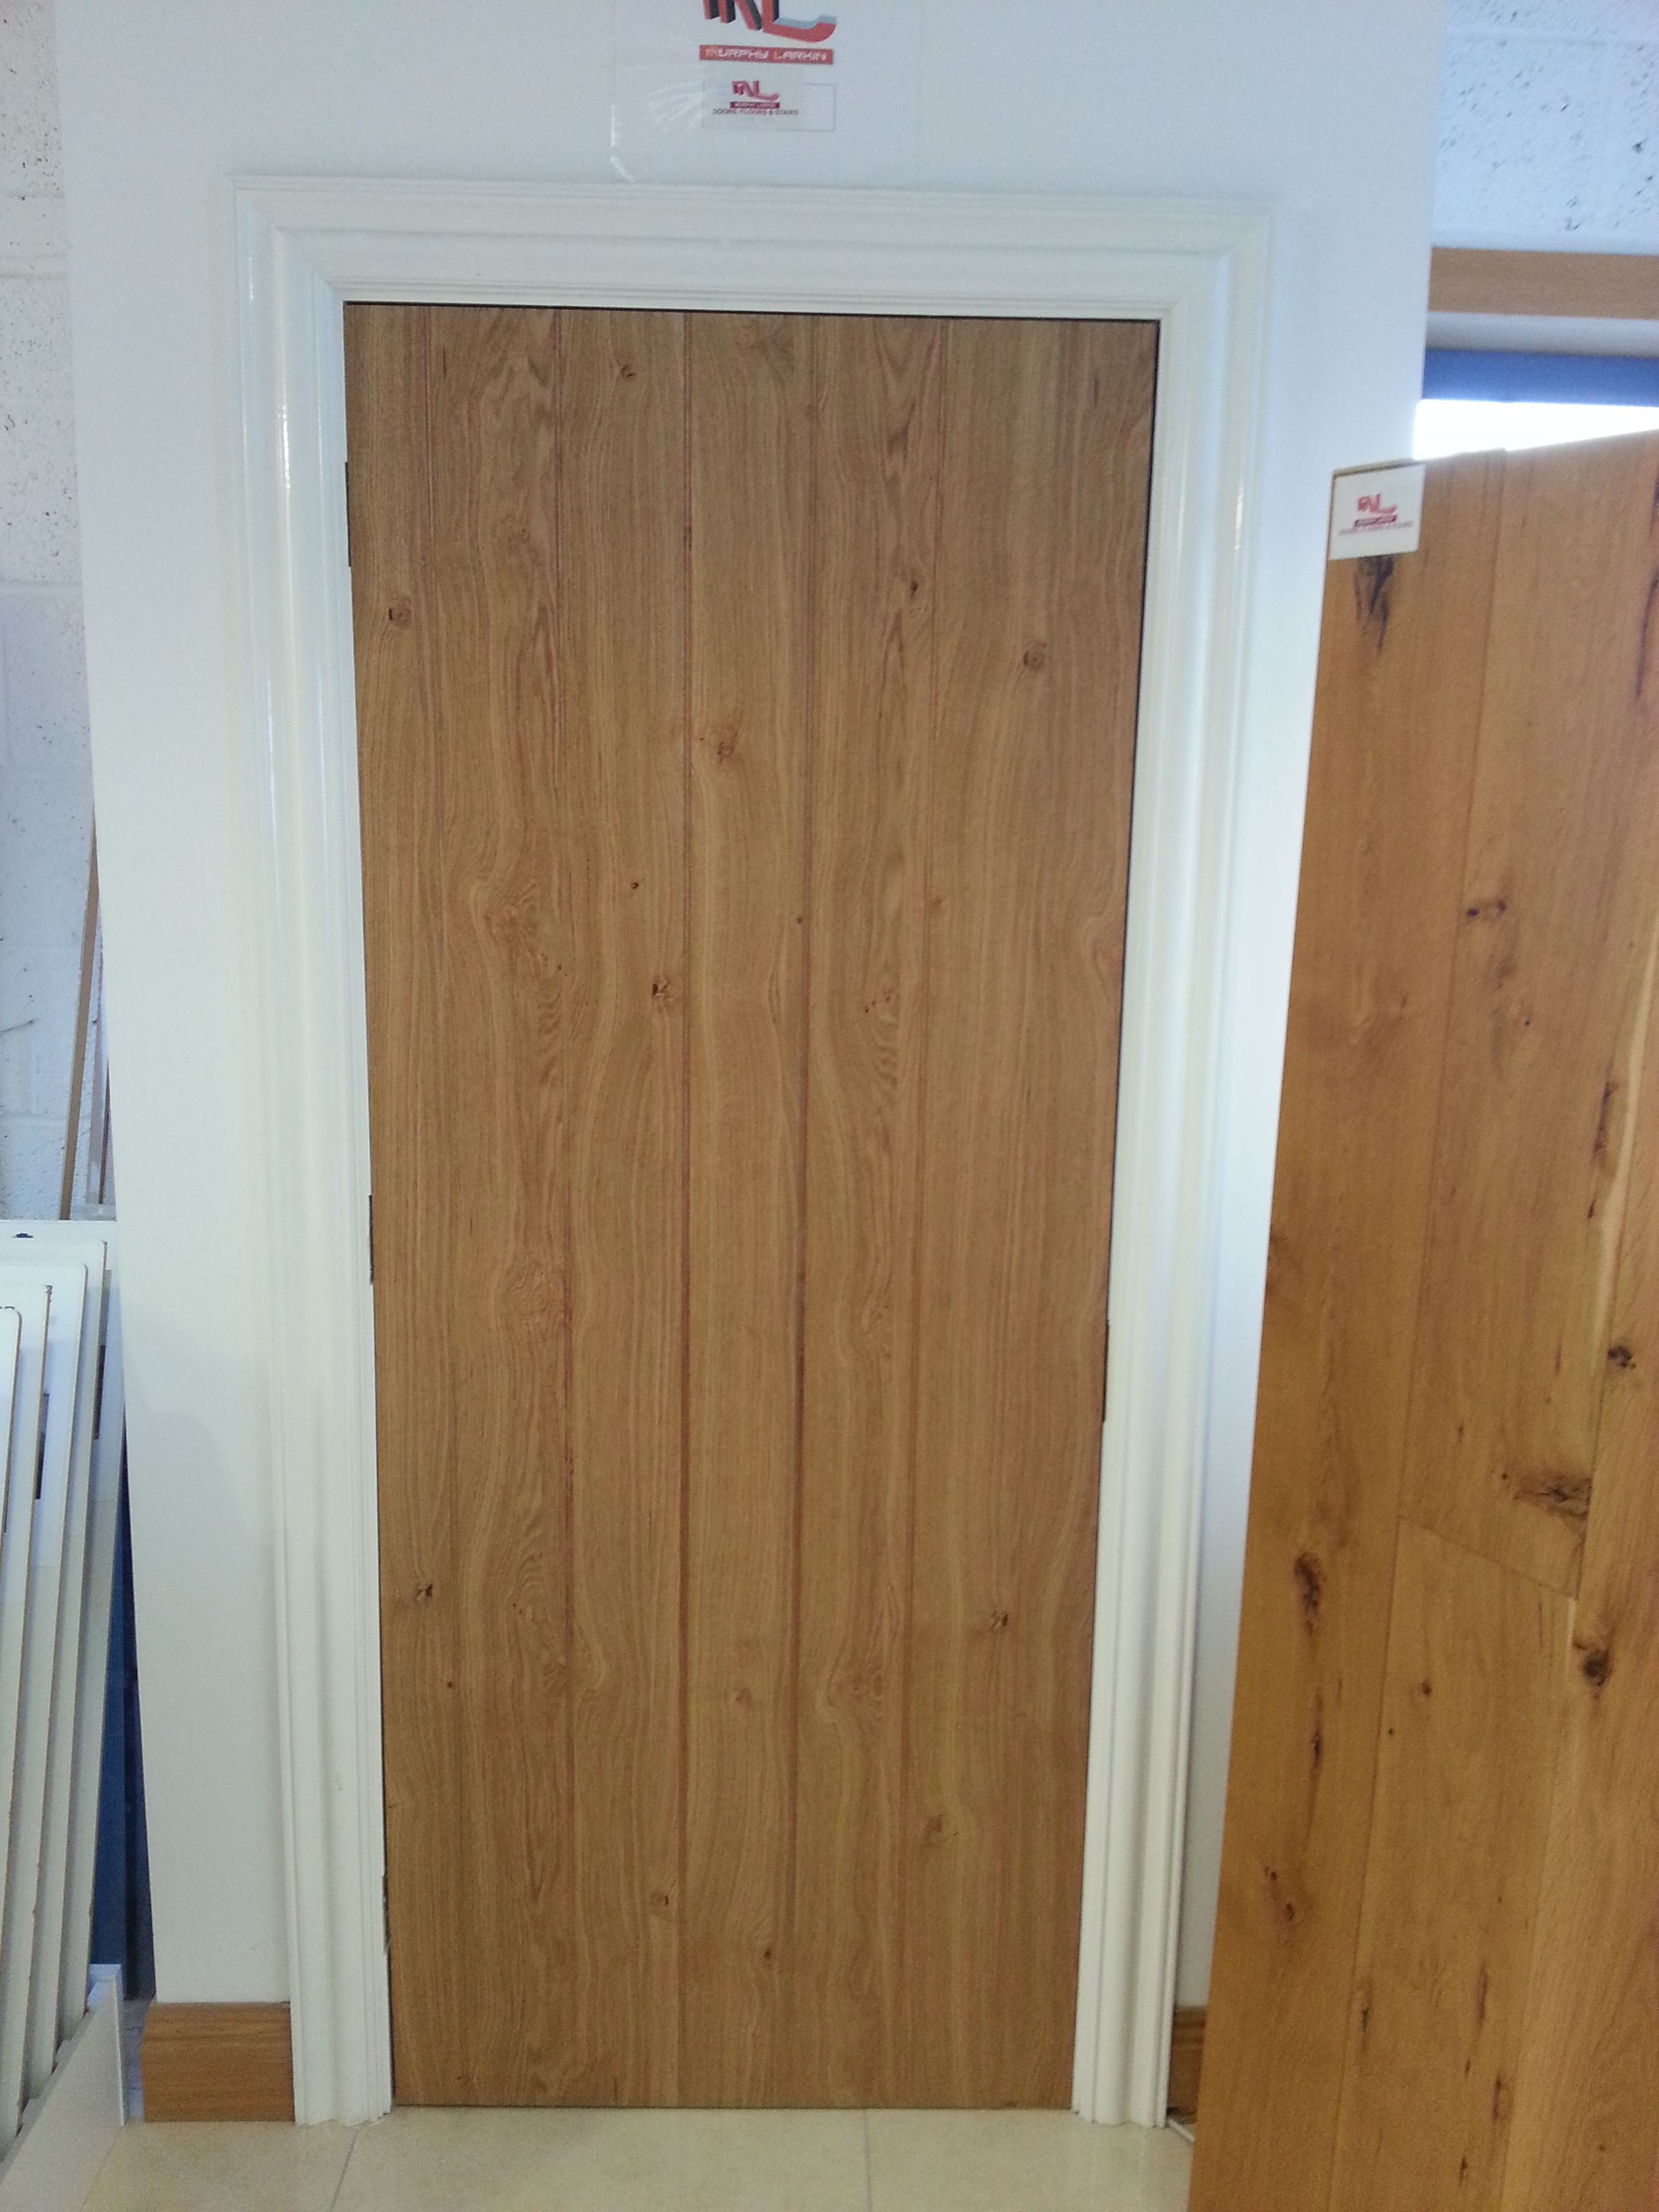 Cottage Oak Door With White Frame And Architrave Oak Doors Hall Decor Internal Doors